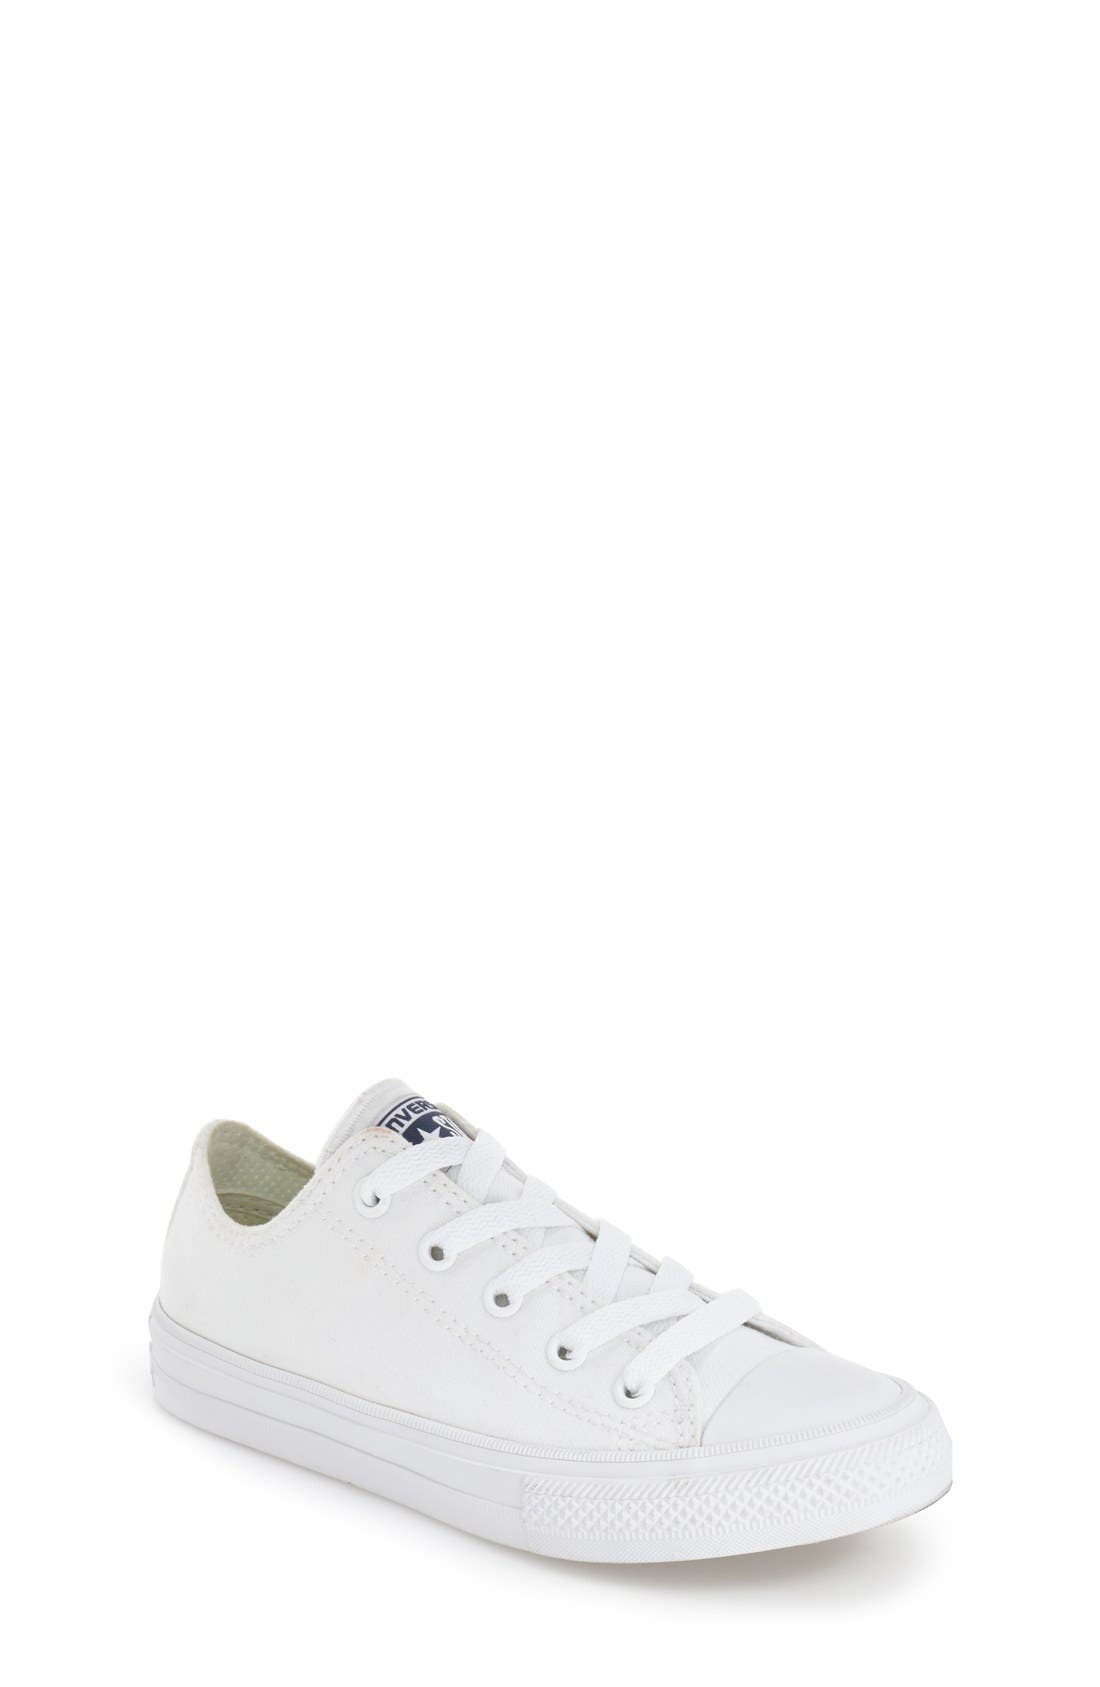 Main Image - Converse Chuck Taylor® All Star® II Ox Low Top Sneaker (Walker, Toddler, Little Kid & Big Kid)